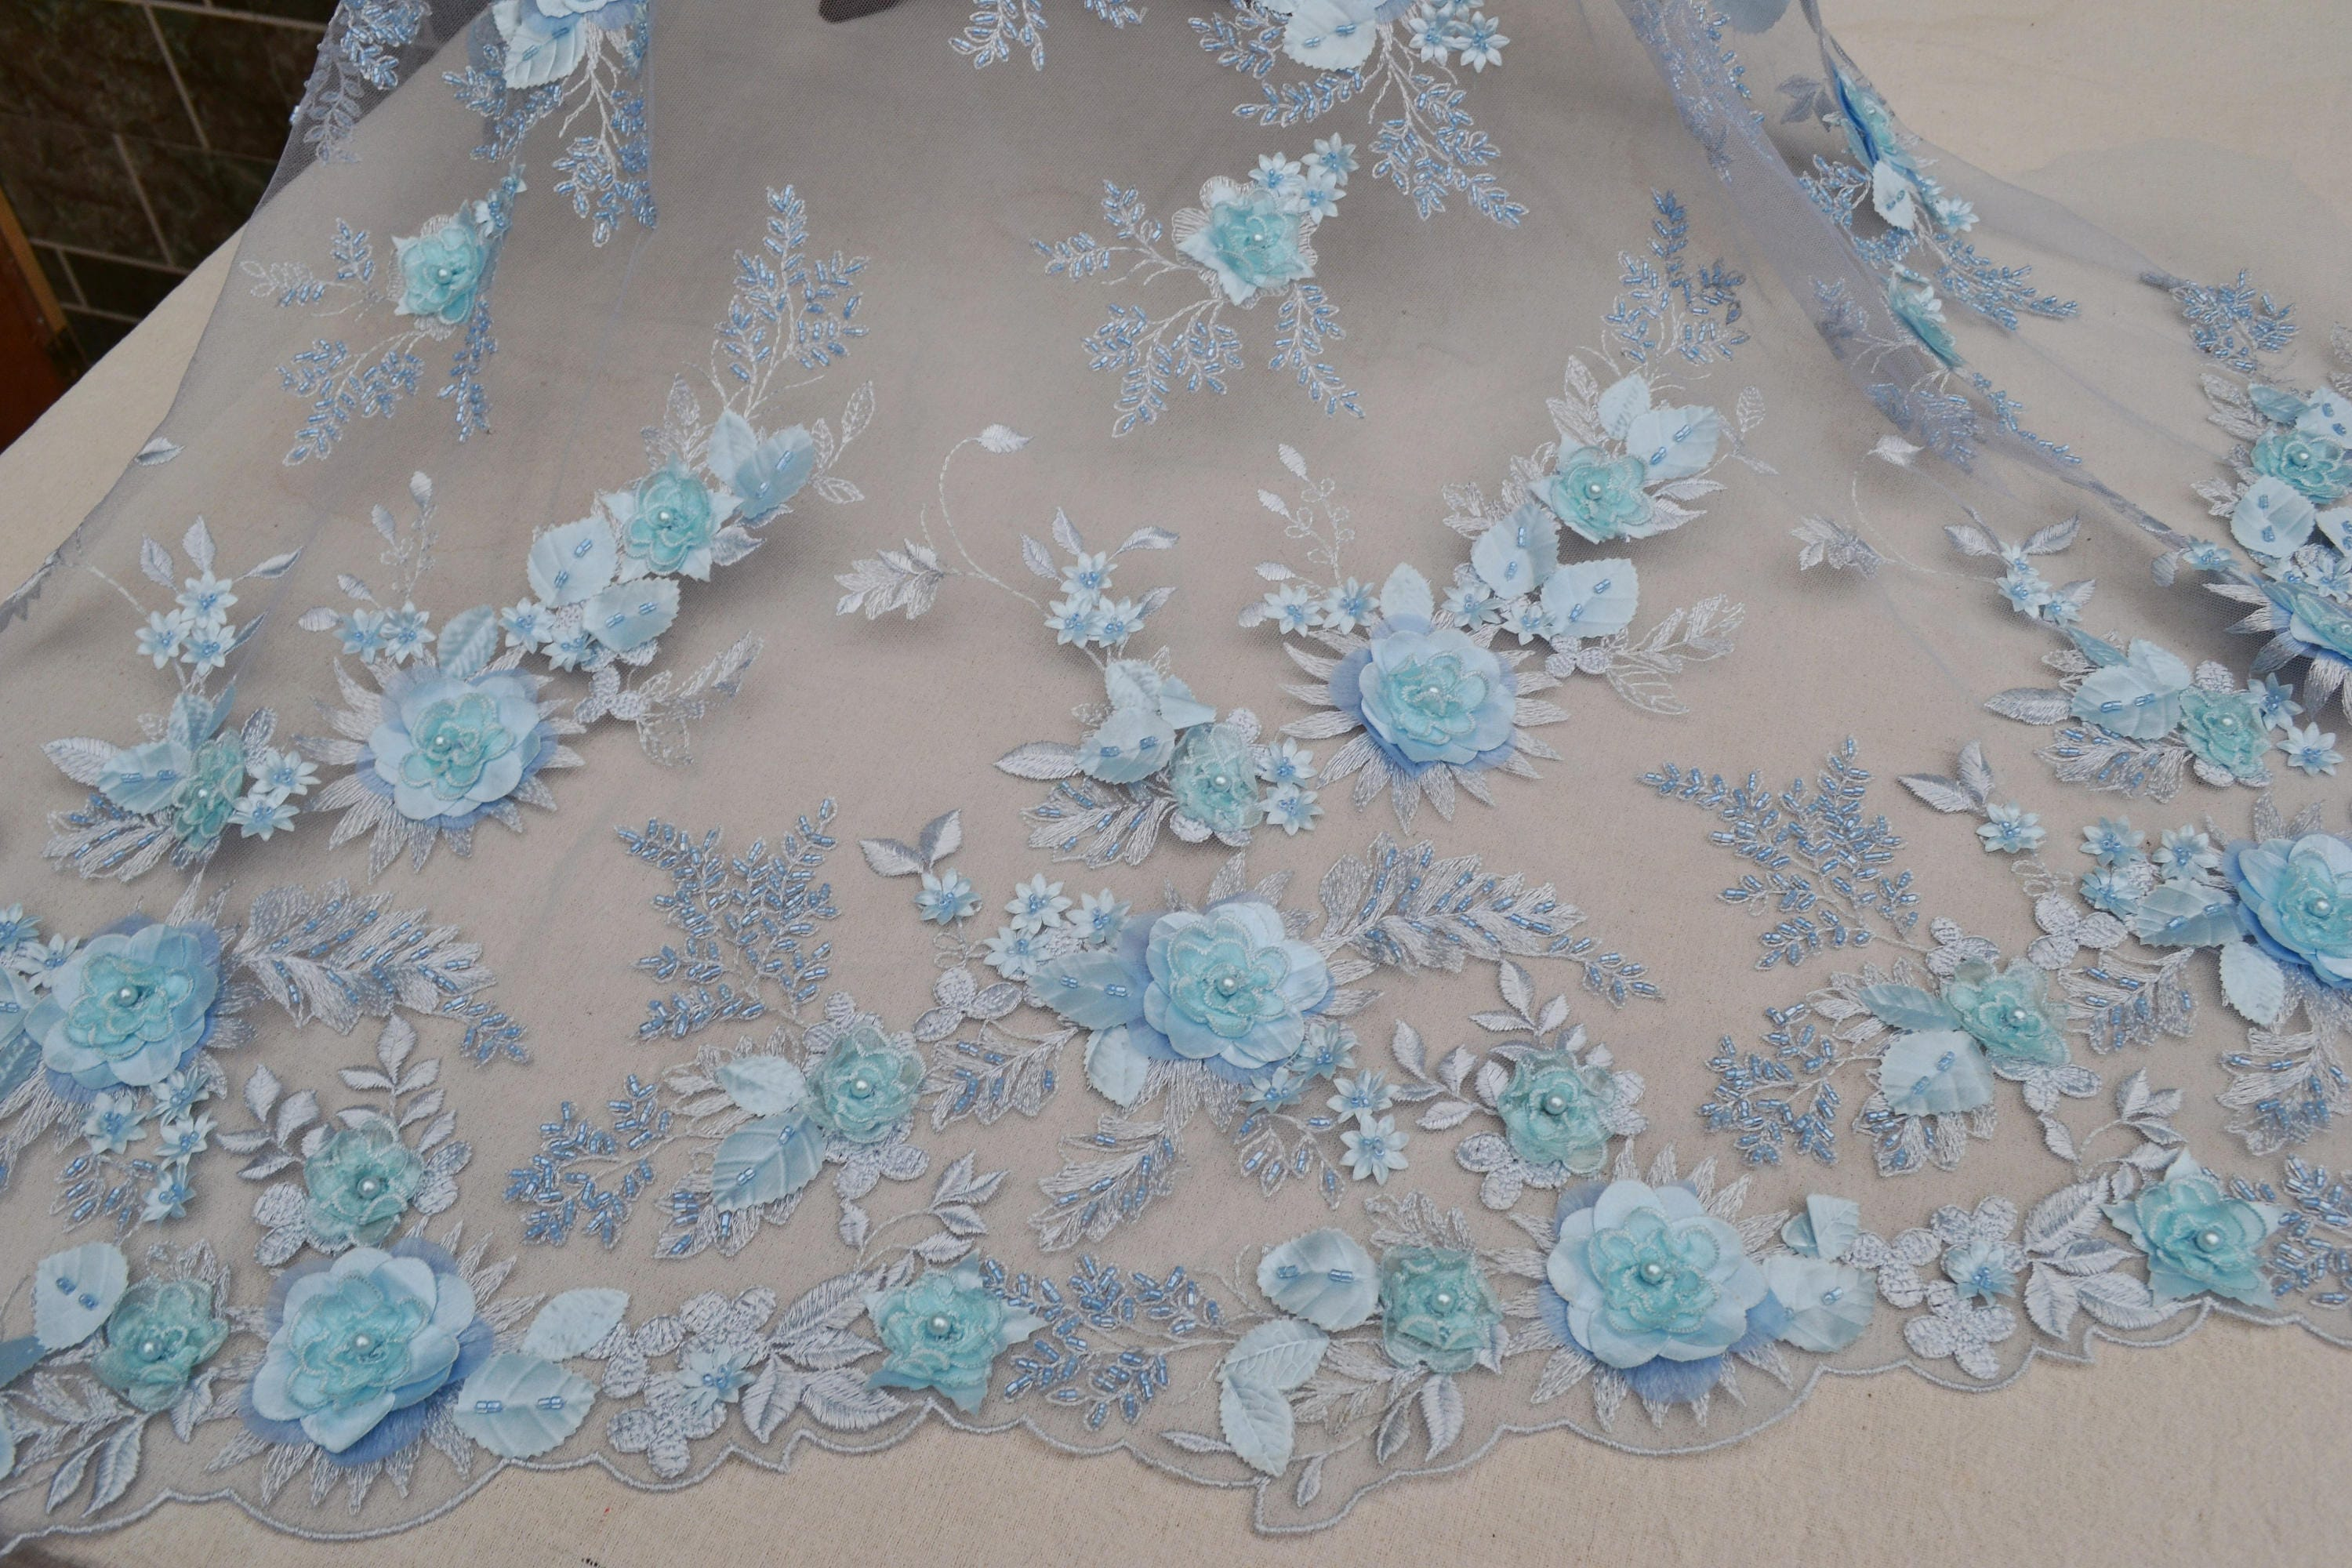 Blue 3D Floral Beaded Lace Fabric Bridal wedding dress Fabric ...